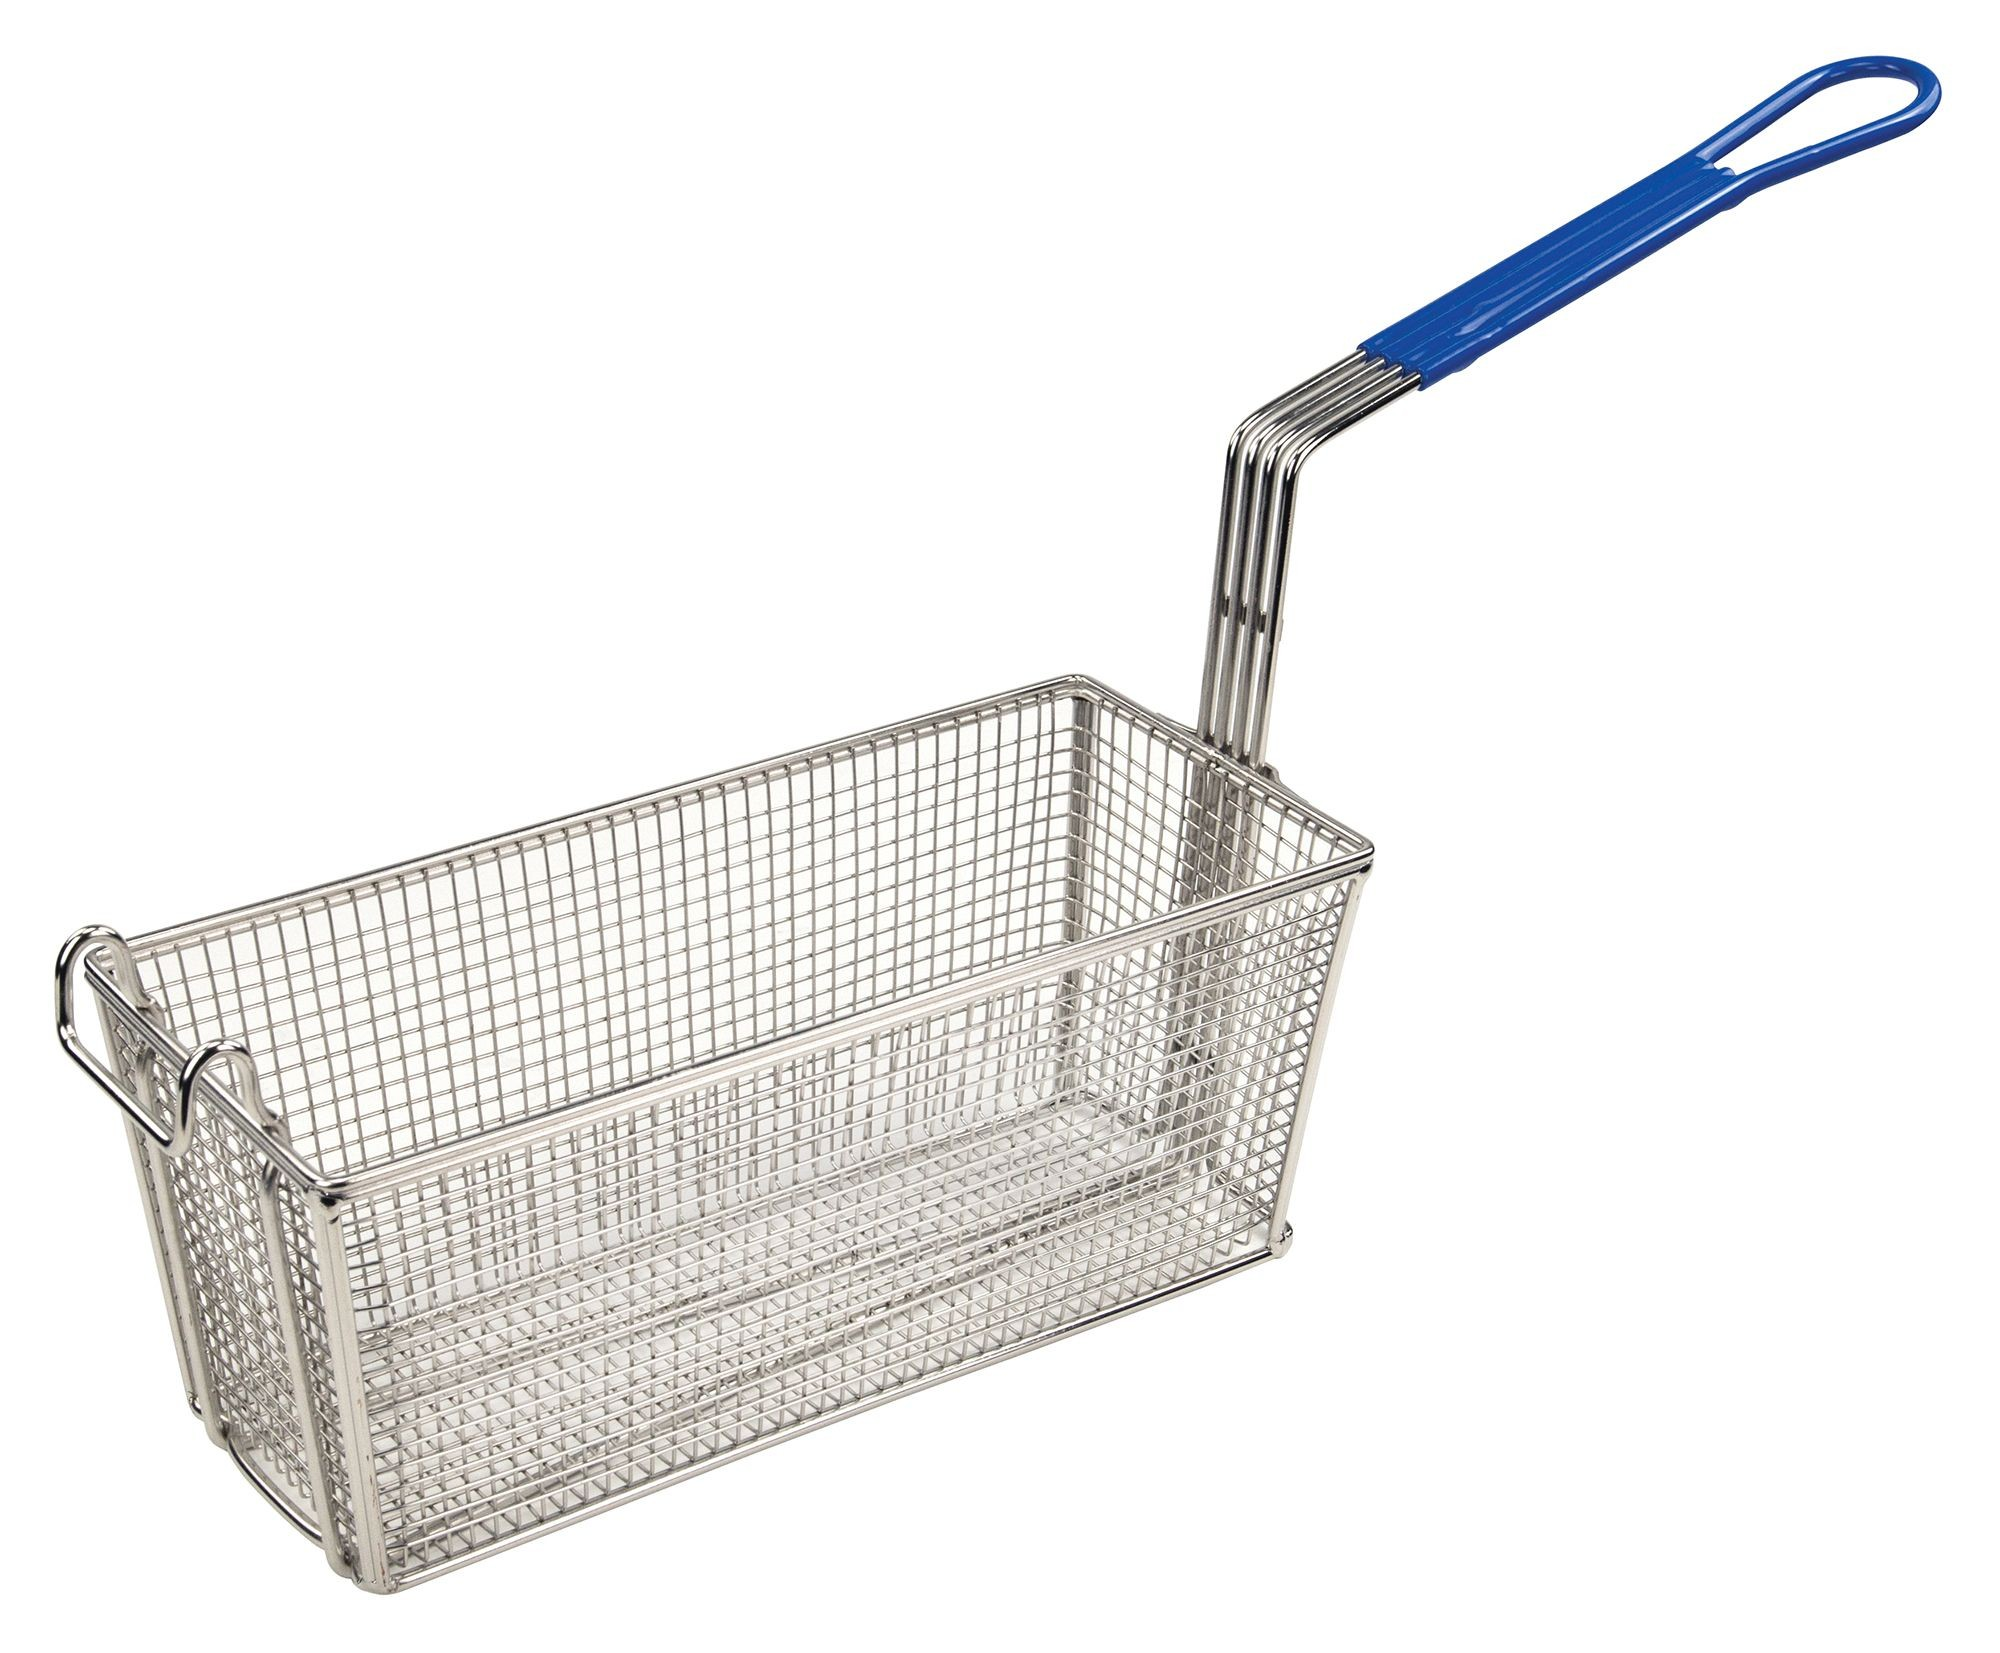 Heavy Duty Plastic Handle Fry Basket - 13-1/4 X 5-5/8 X 5-7/8